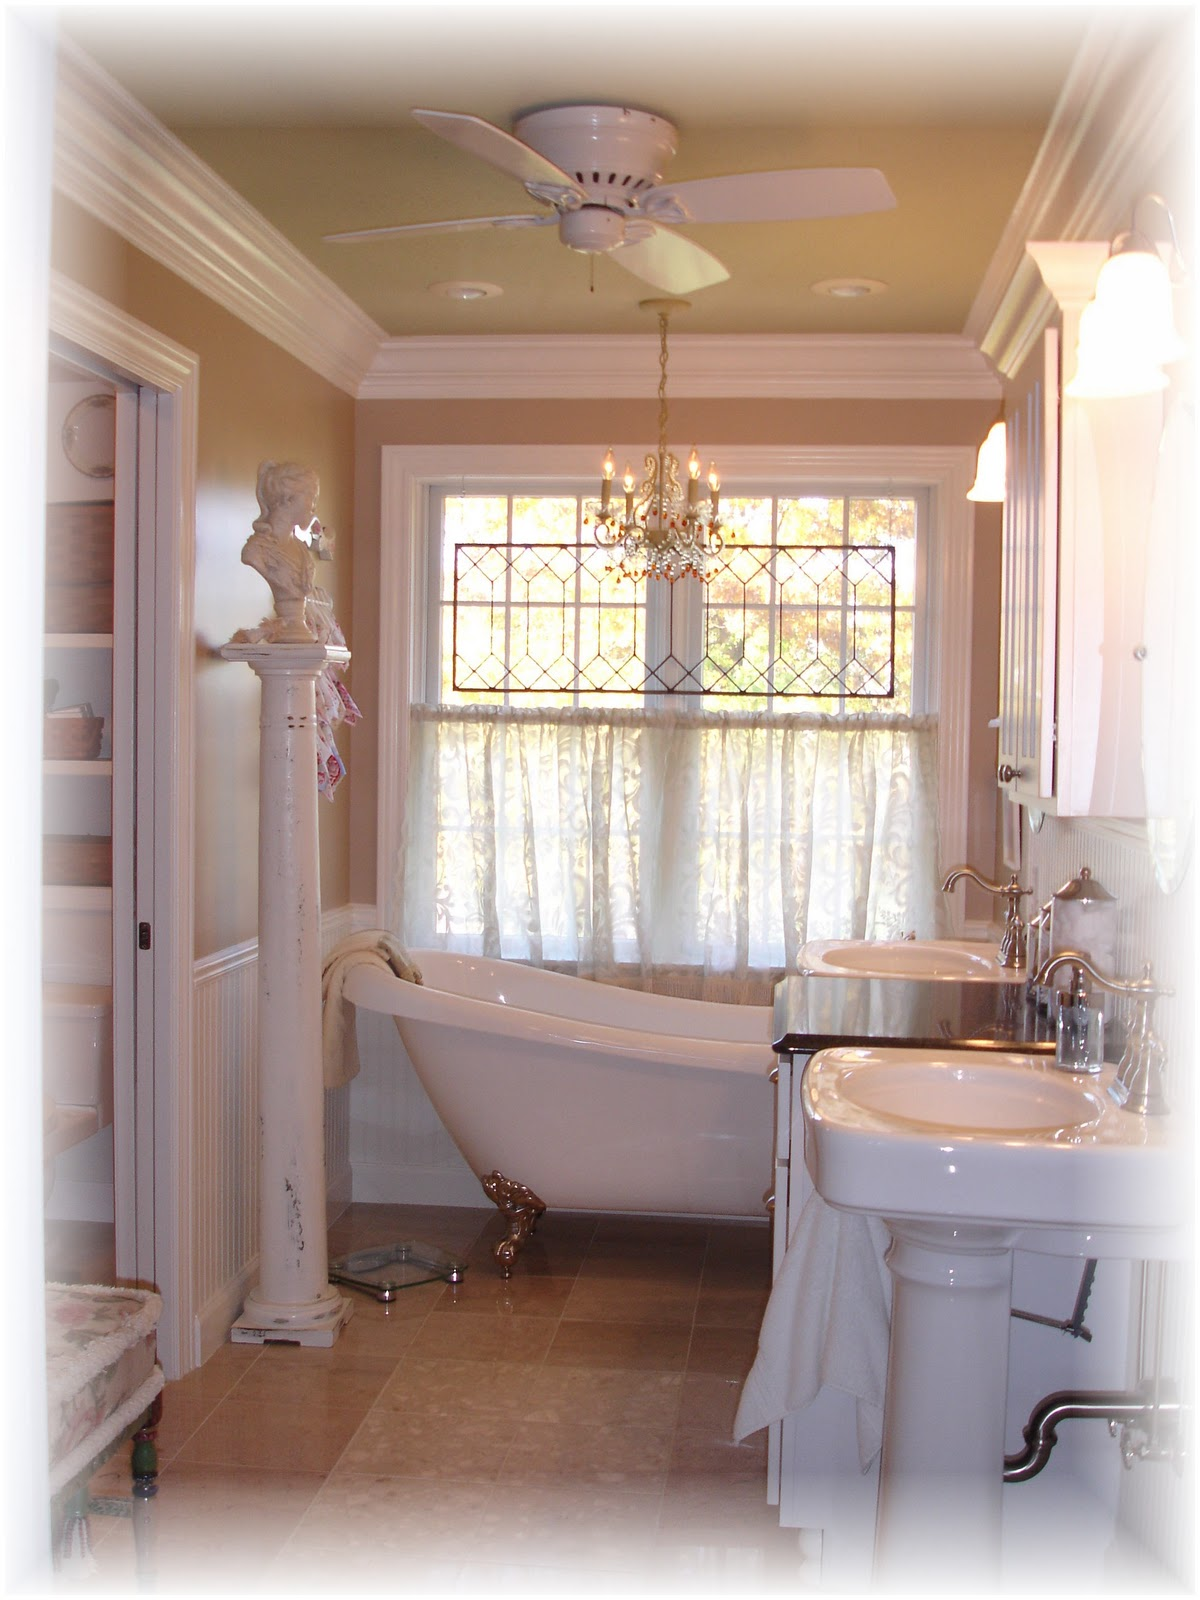 Forever decorating my master bathroom update - Master bathroom ...